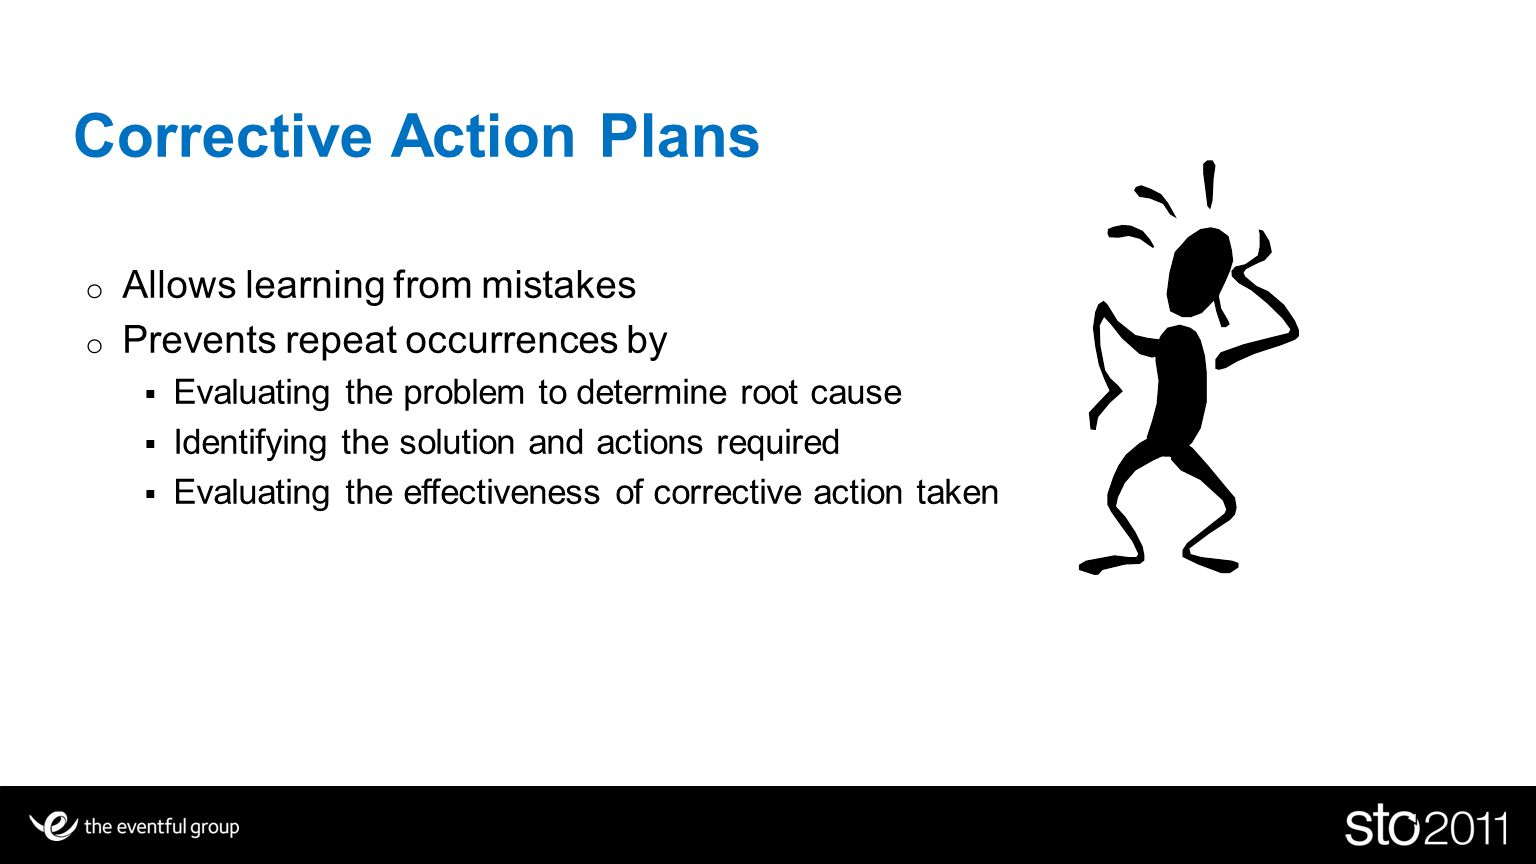 Corrective Action Plans o Allows learning from mistakes o Prevents repeat occurrences by Evaluating the problem to determine root cause Identifying the solution and actions required Evaluating the effectiveness of corrective action taken